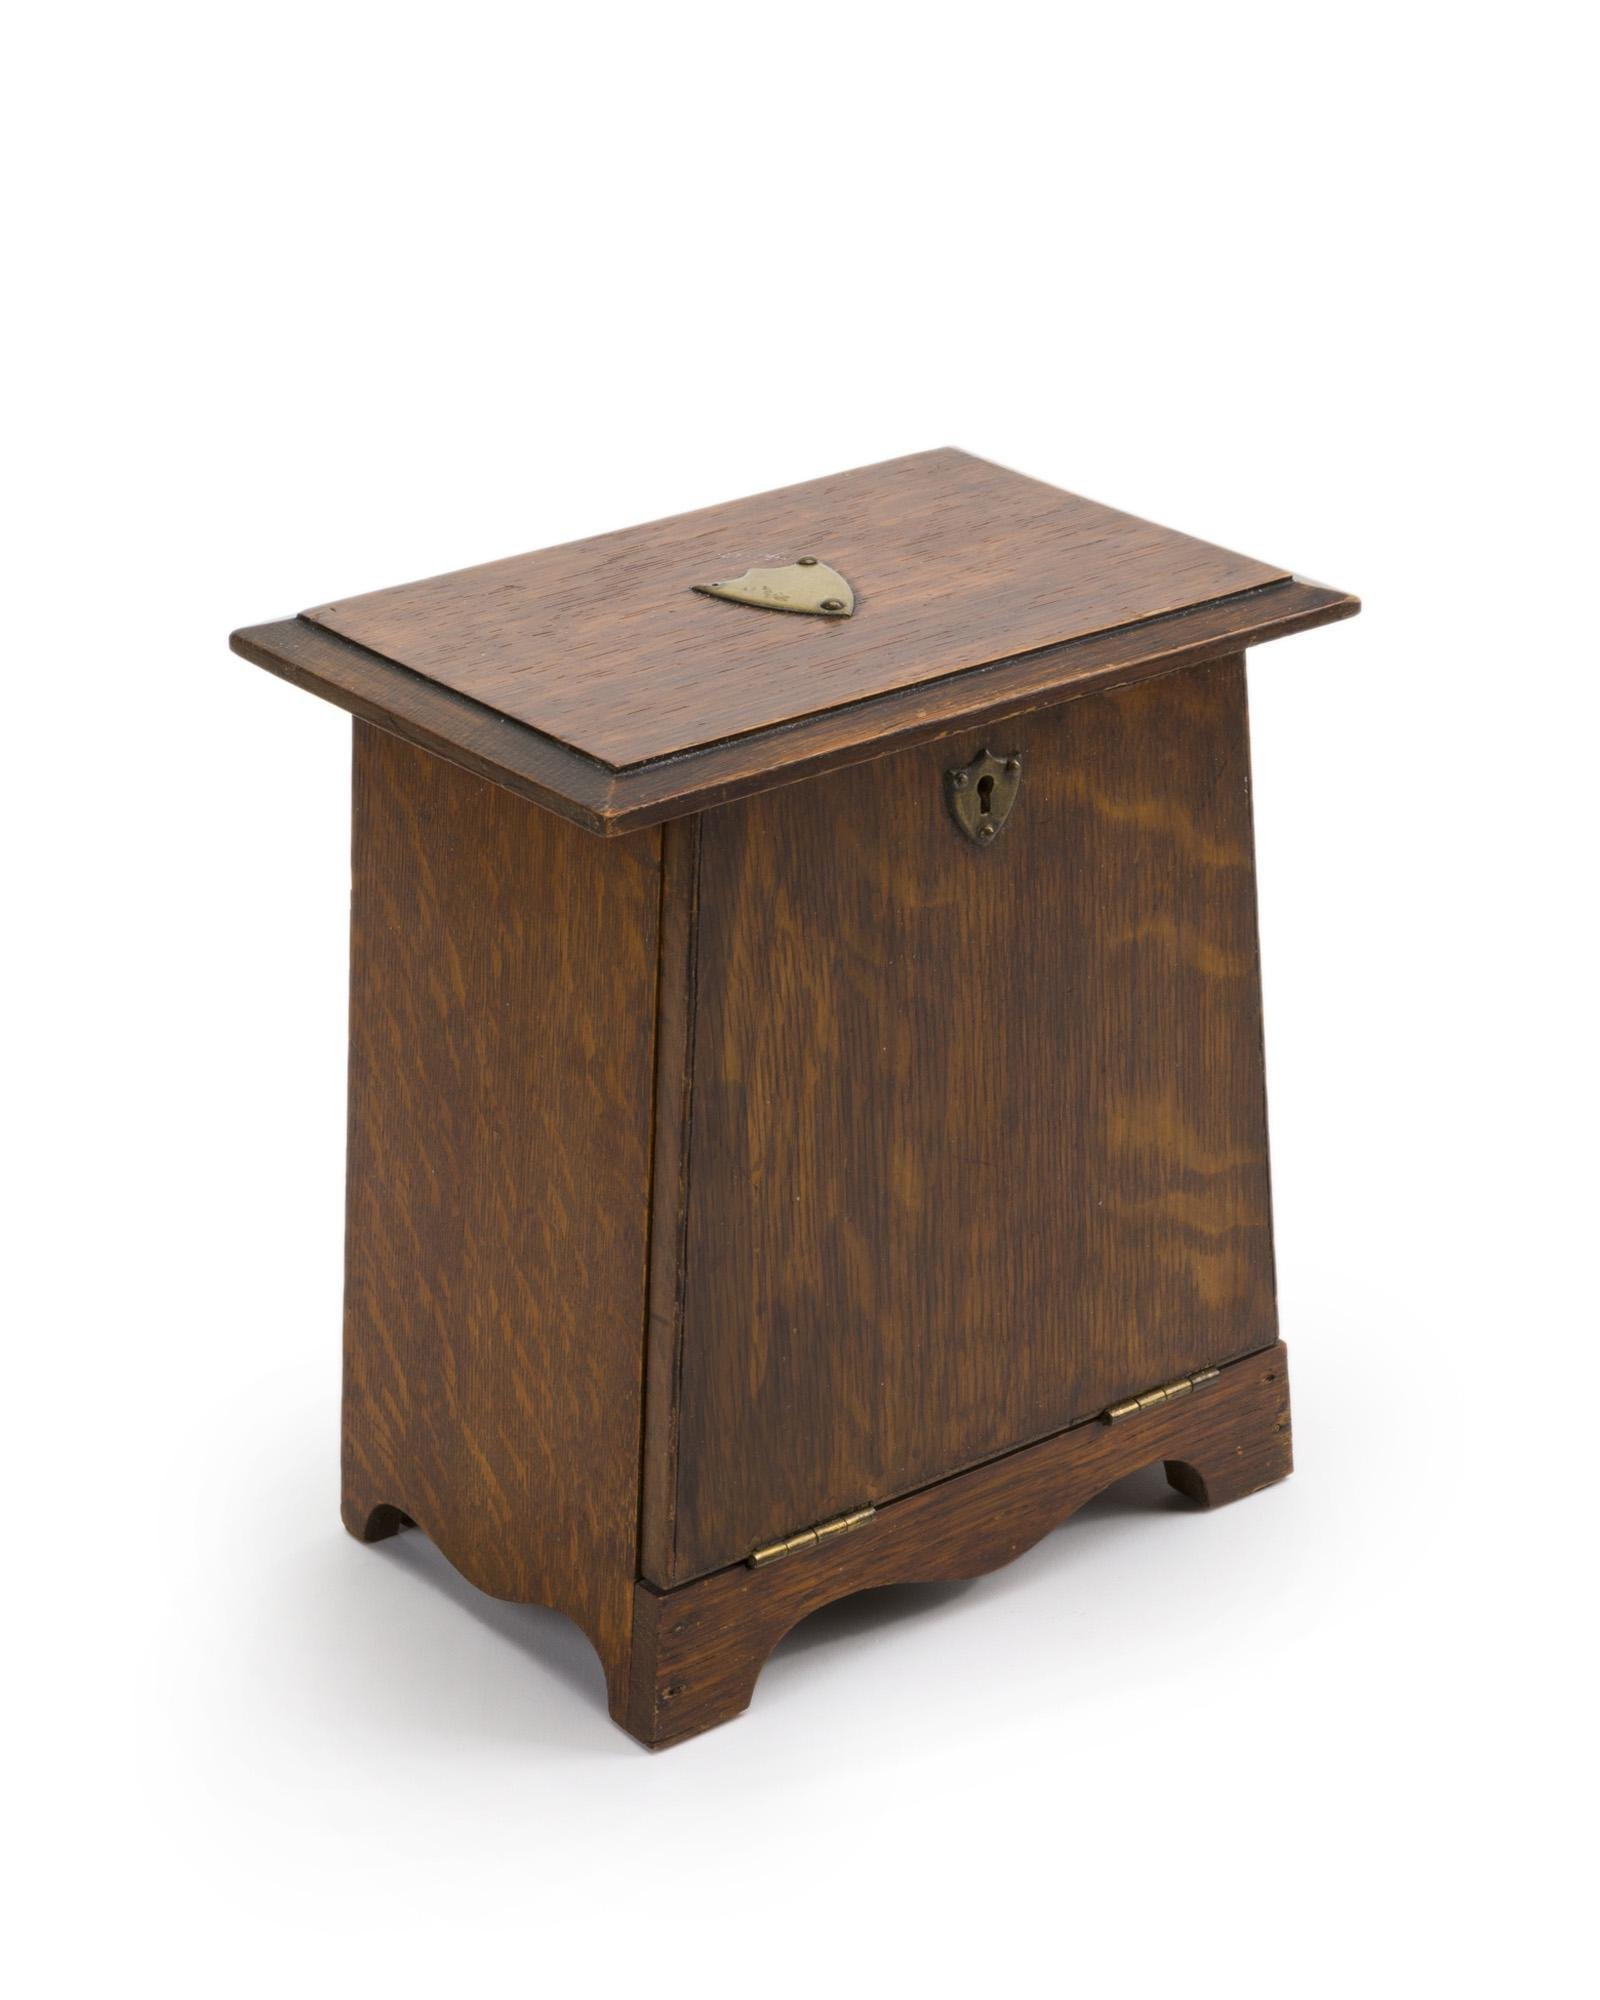 An English Arts & Crafts traveling letter desk